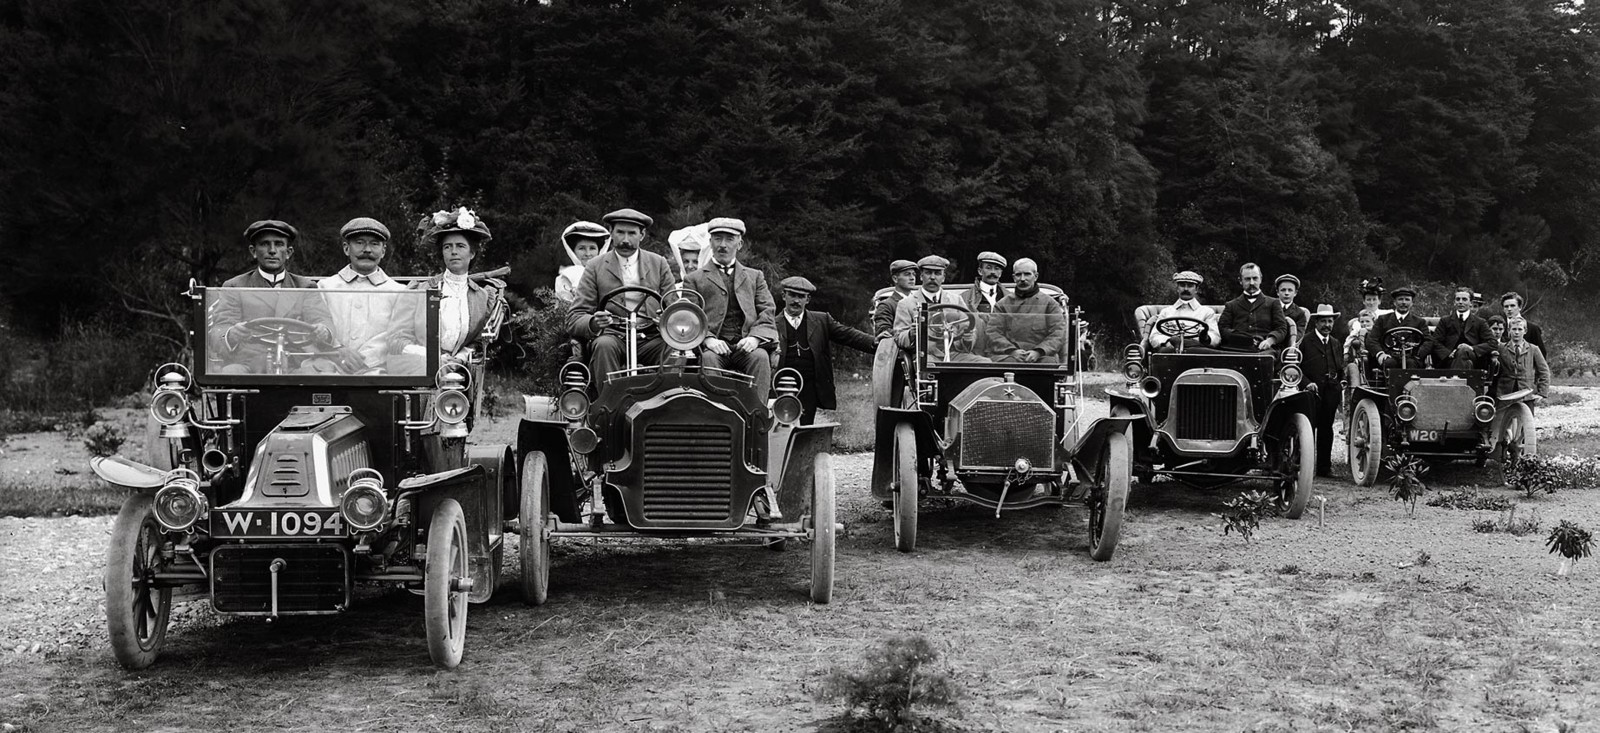 Despite the rapid growth of societies such as the Wellington Automobile Club—here on an outing to Upper Hutt in 1908—many people were reluctant to embrace motoring. Cars threatened the great equine infrastructure of breeders, feed producers, farriers and carriage-makers. They frightened animals, collided frequently with trees, bystanders, fences and street lamps and even came to threaten the existence of inns and hamlets. As roads improved, travellers ranged further, bypassing the staging posts that represented a day's journey by horse-drawn coach.